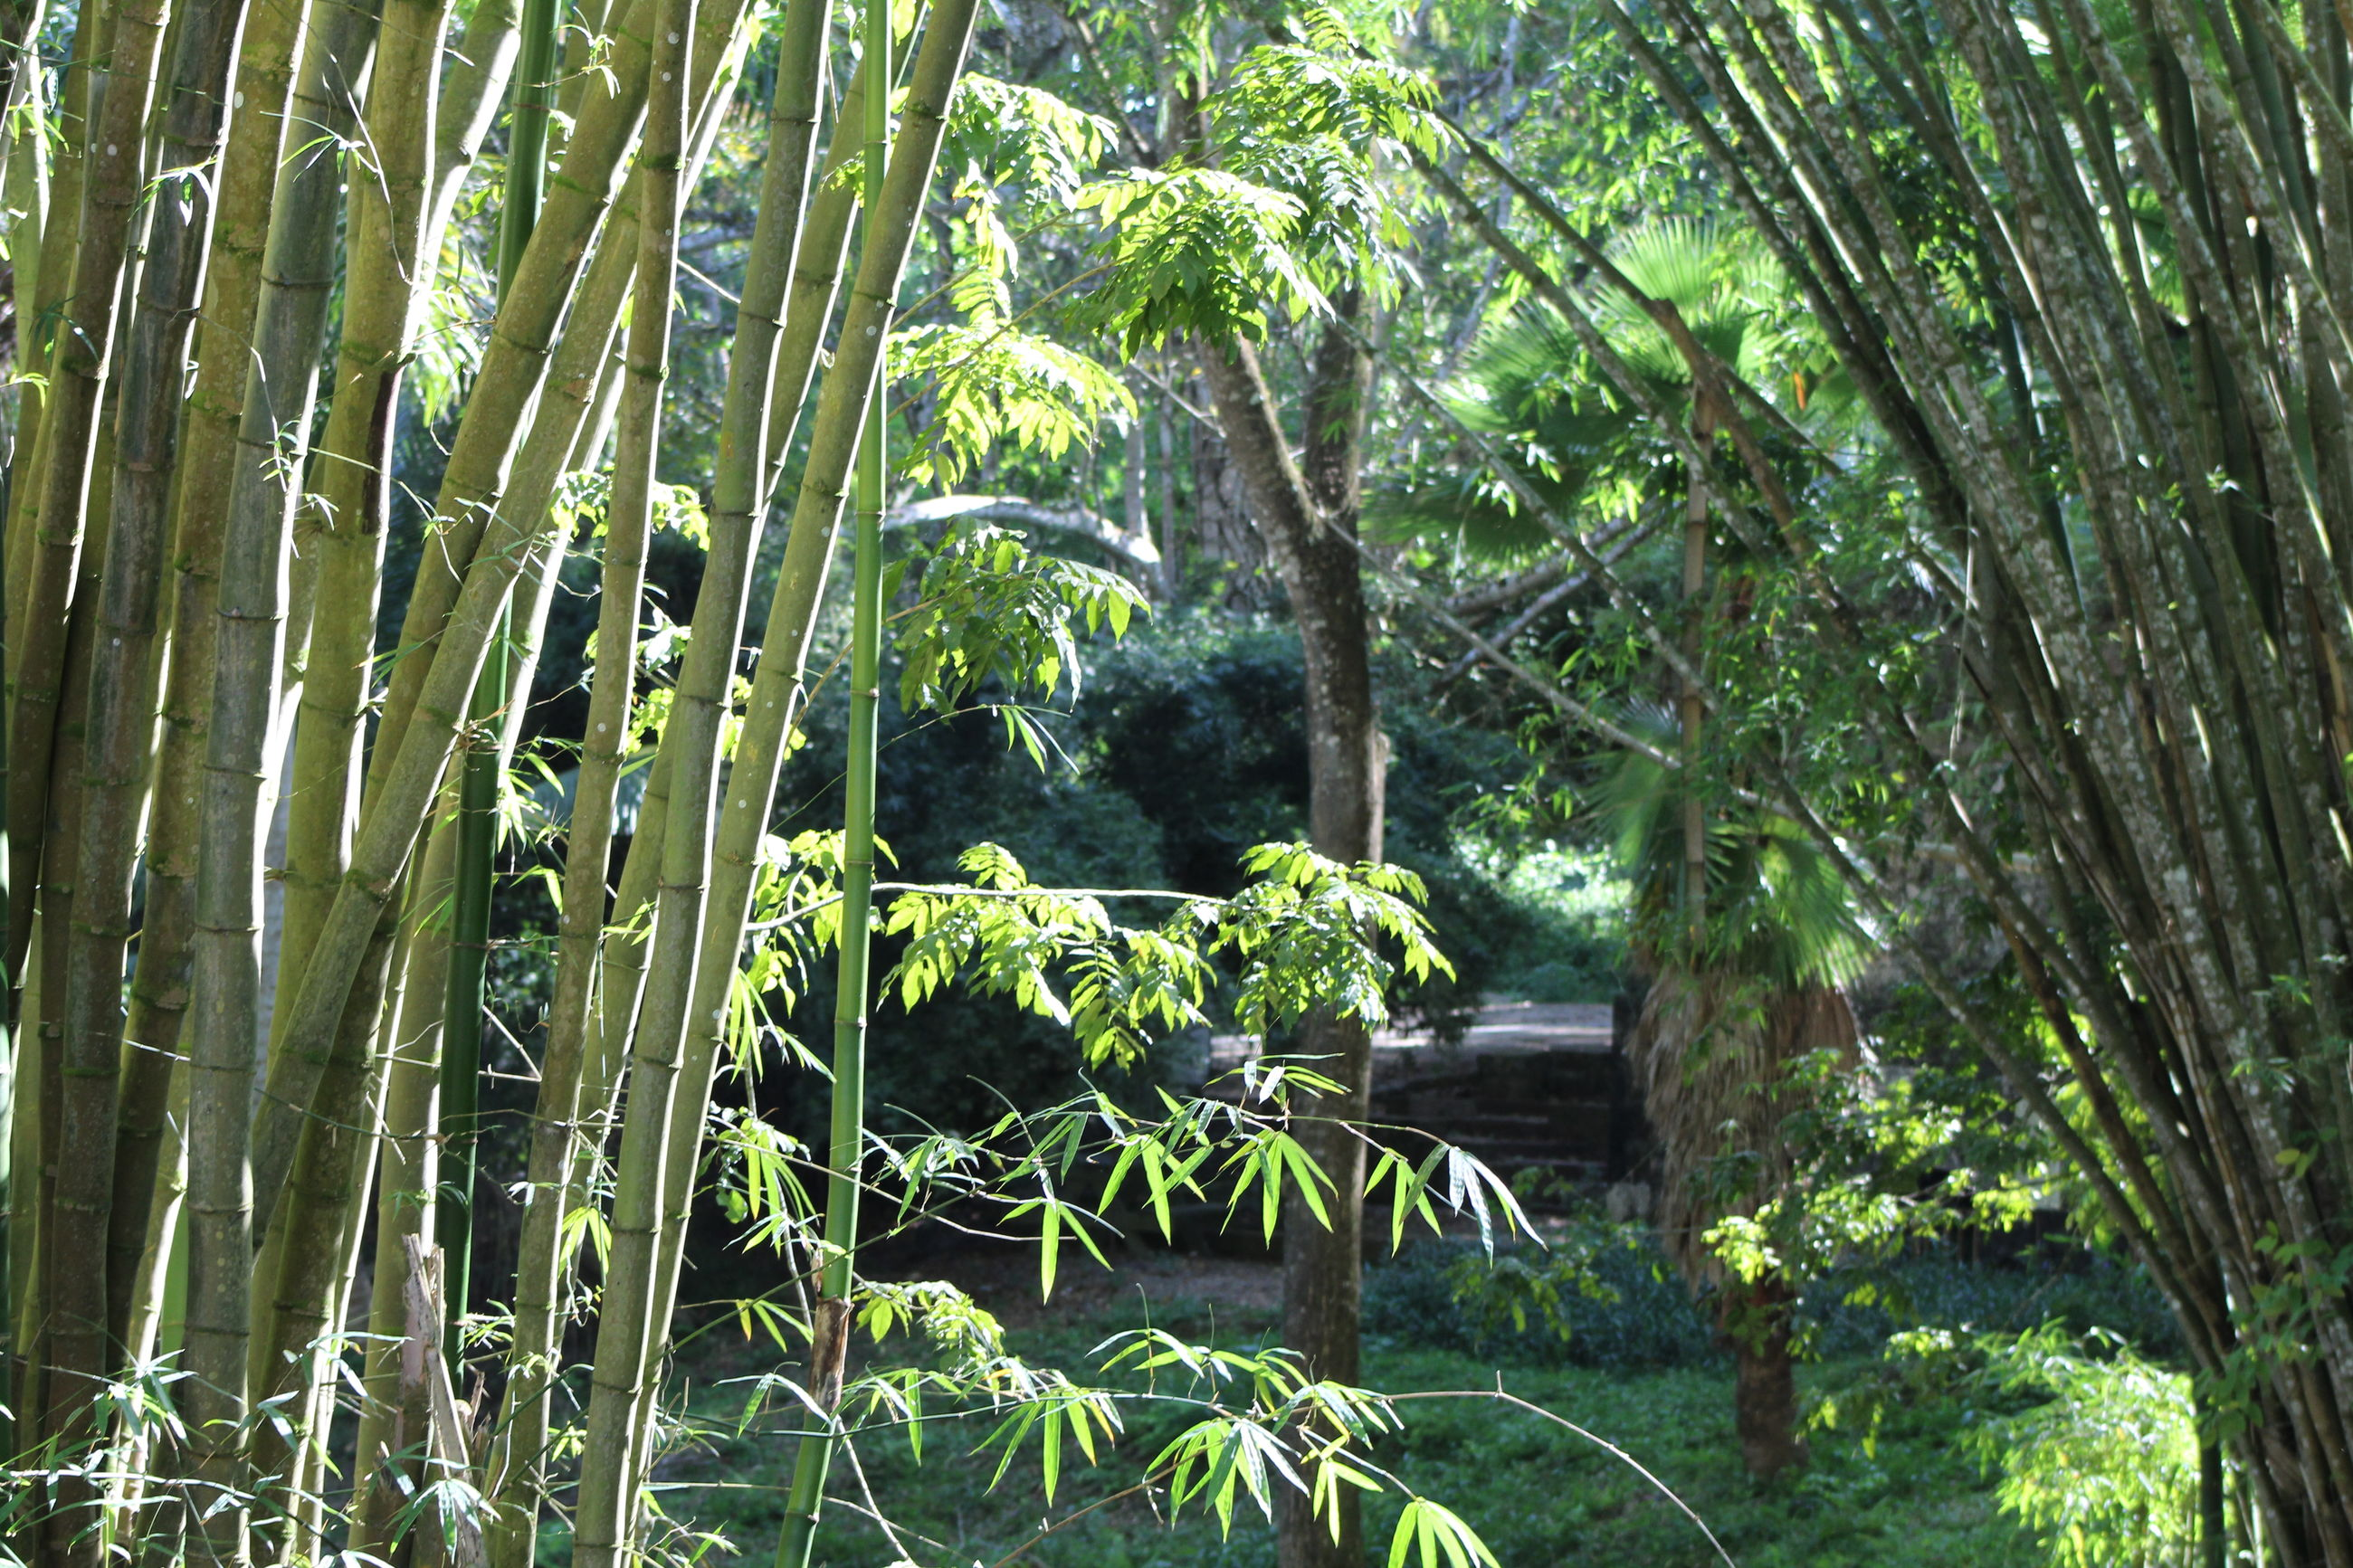 growth, nature, tranquility, green color, beauty in nature, tree, day, plant, outdoors, tranquil scene, no people, leaf, bamboo grove, scenics, bamboo - plant, forest, tree trunk